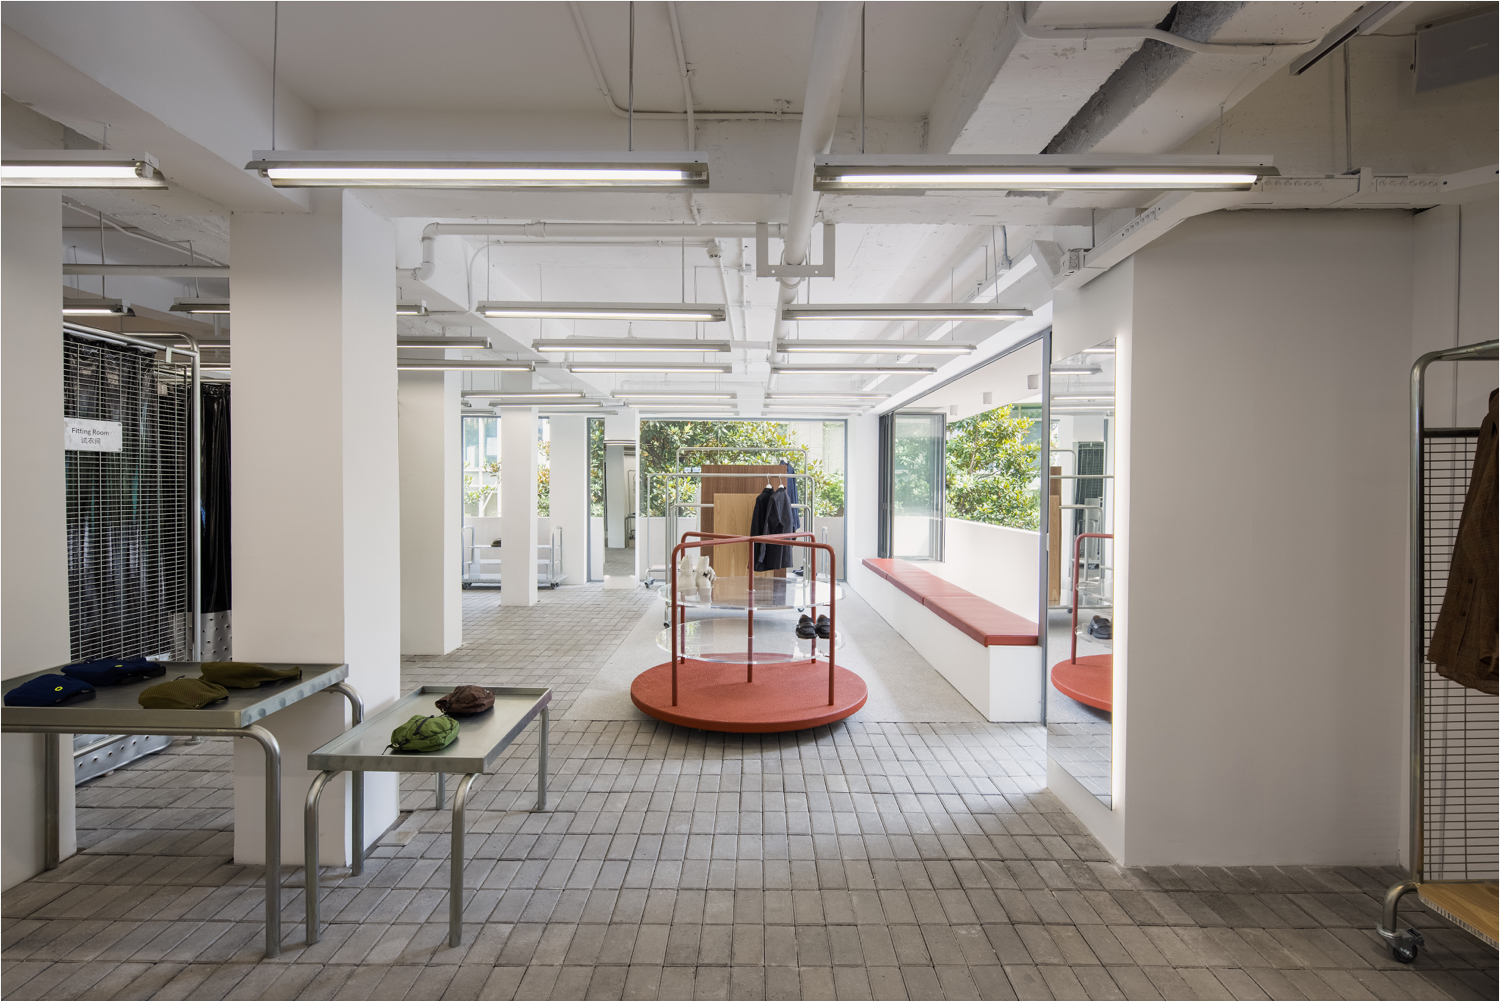 A metal carousel in the middle of the store deliberately recalls the kind found in children's playgrounds across the globe